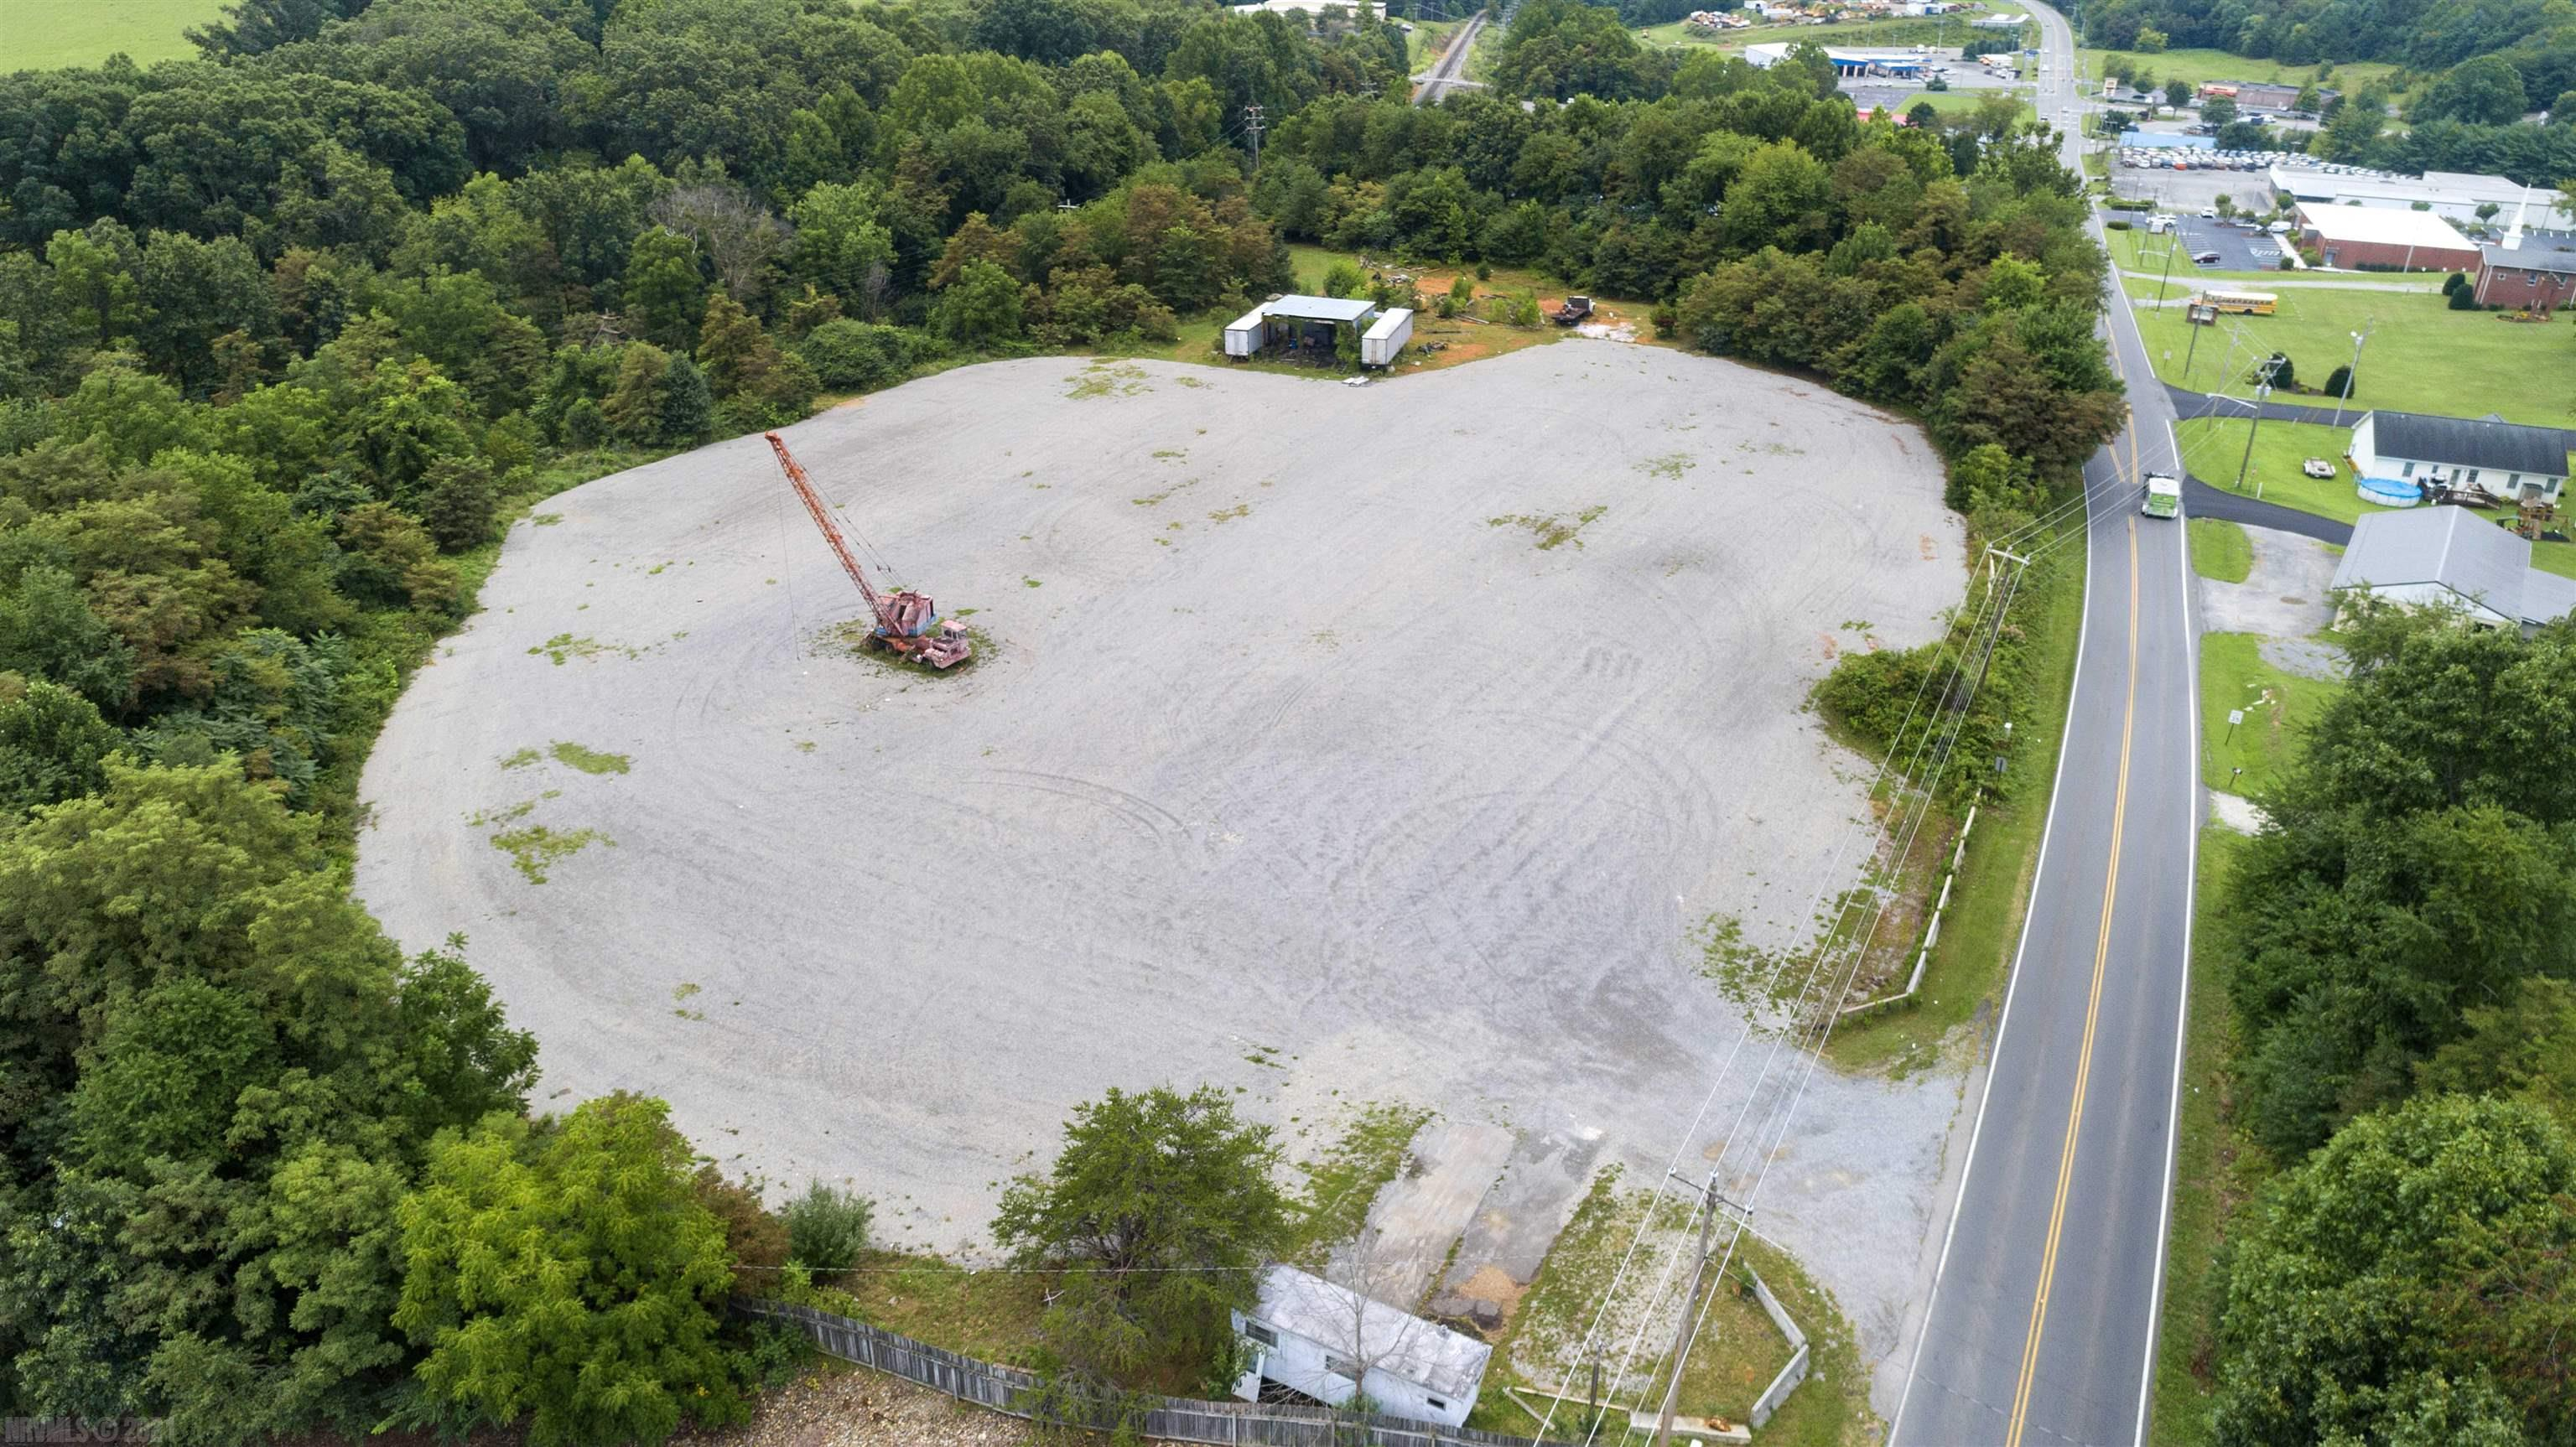 Are you looking for a place to land your business that has easy access from I-81 and in a highly traveled area?  Here it is. Only 5 minutes to Volvo, James Hardee and I-81 and 15 minutes to Dublin Airport and a Port of Entry! This lot is full of possibilities!! All it needs is someone with a purpose for it and a calling to step out and jump. Call today for your private showing.